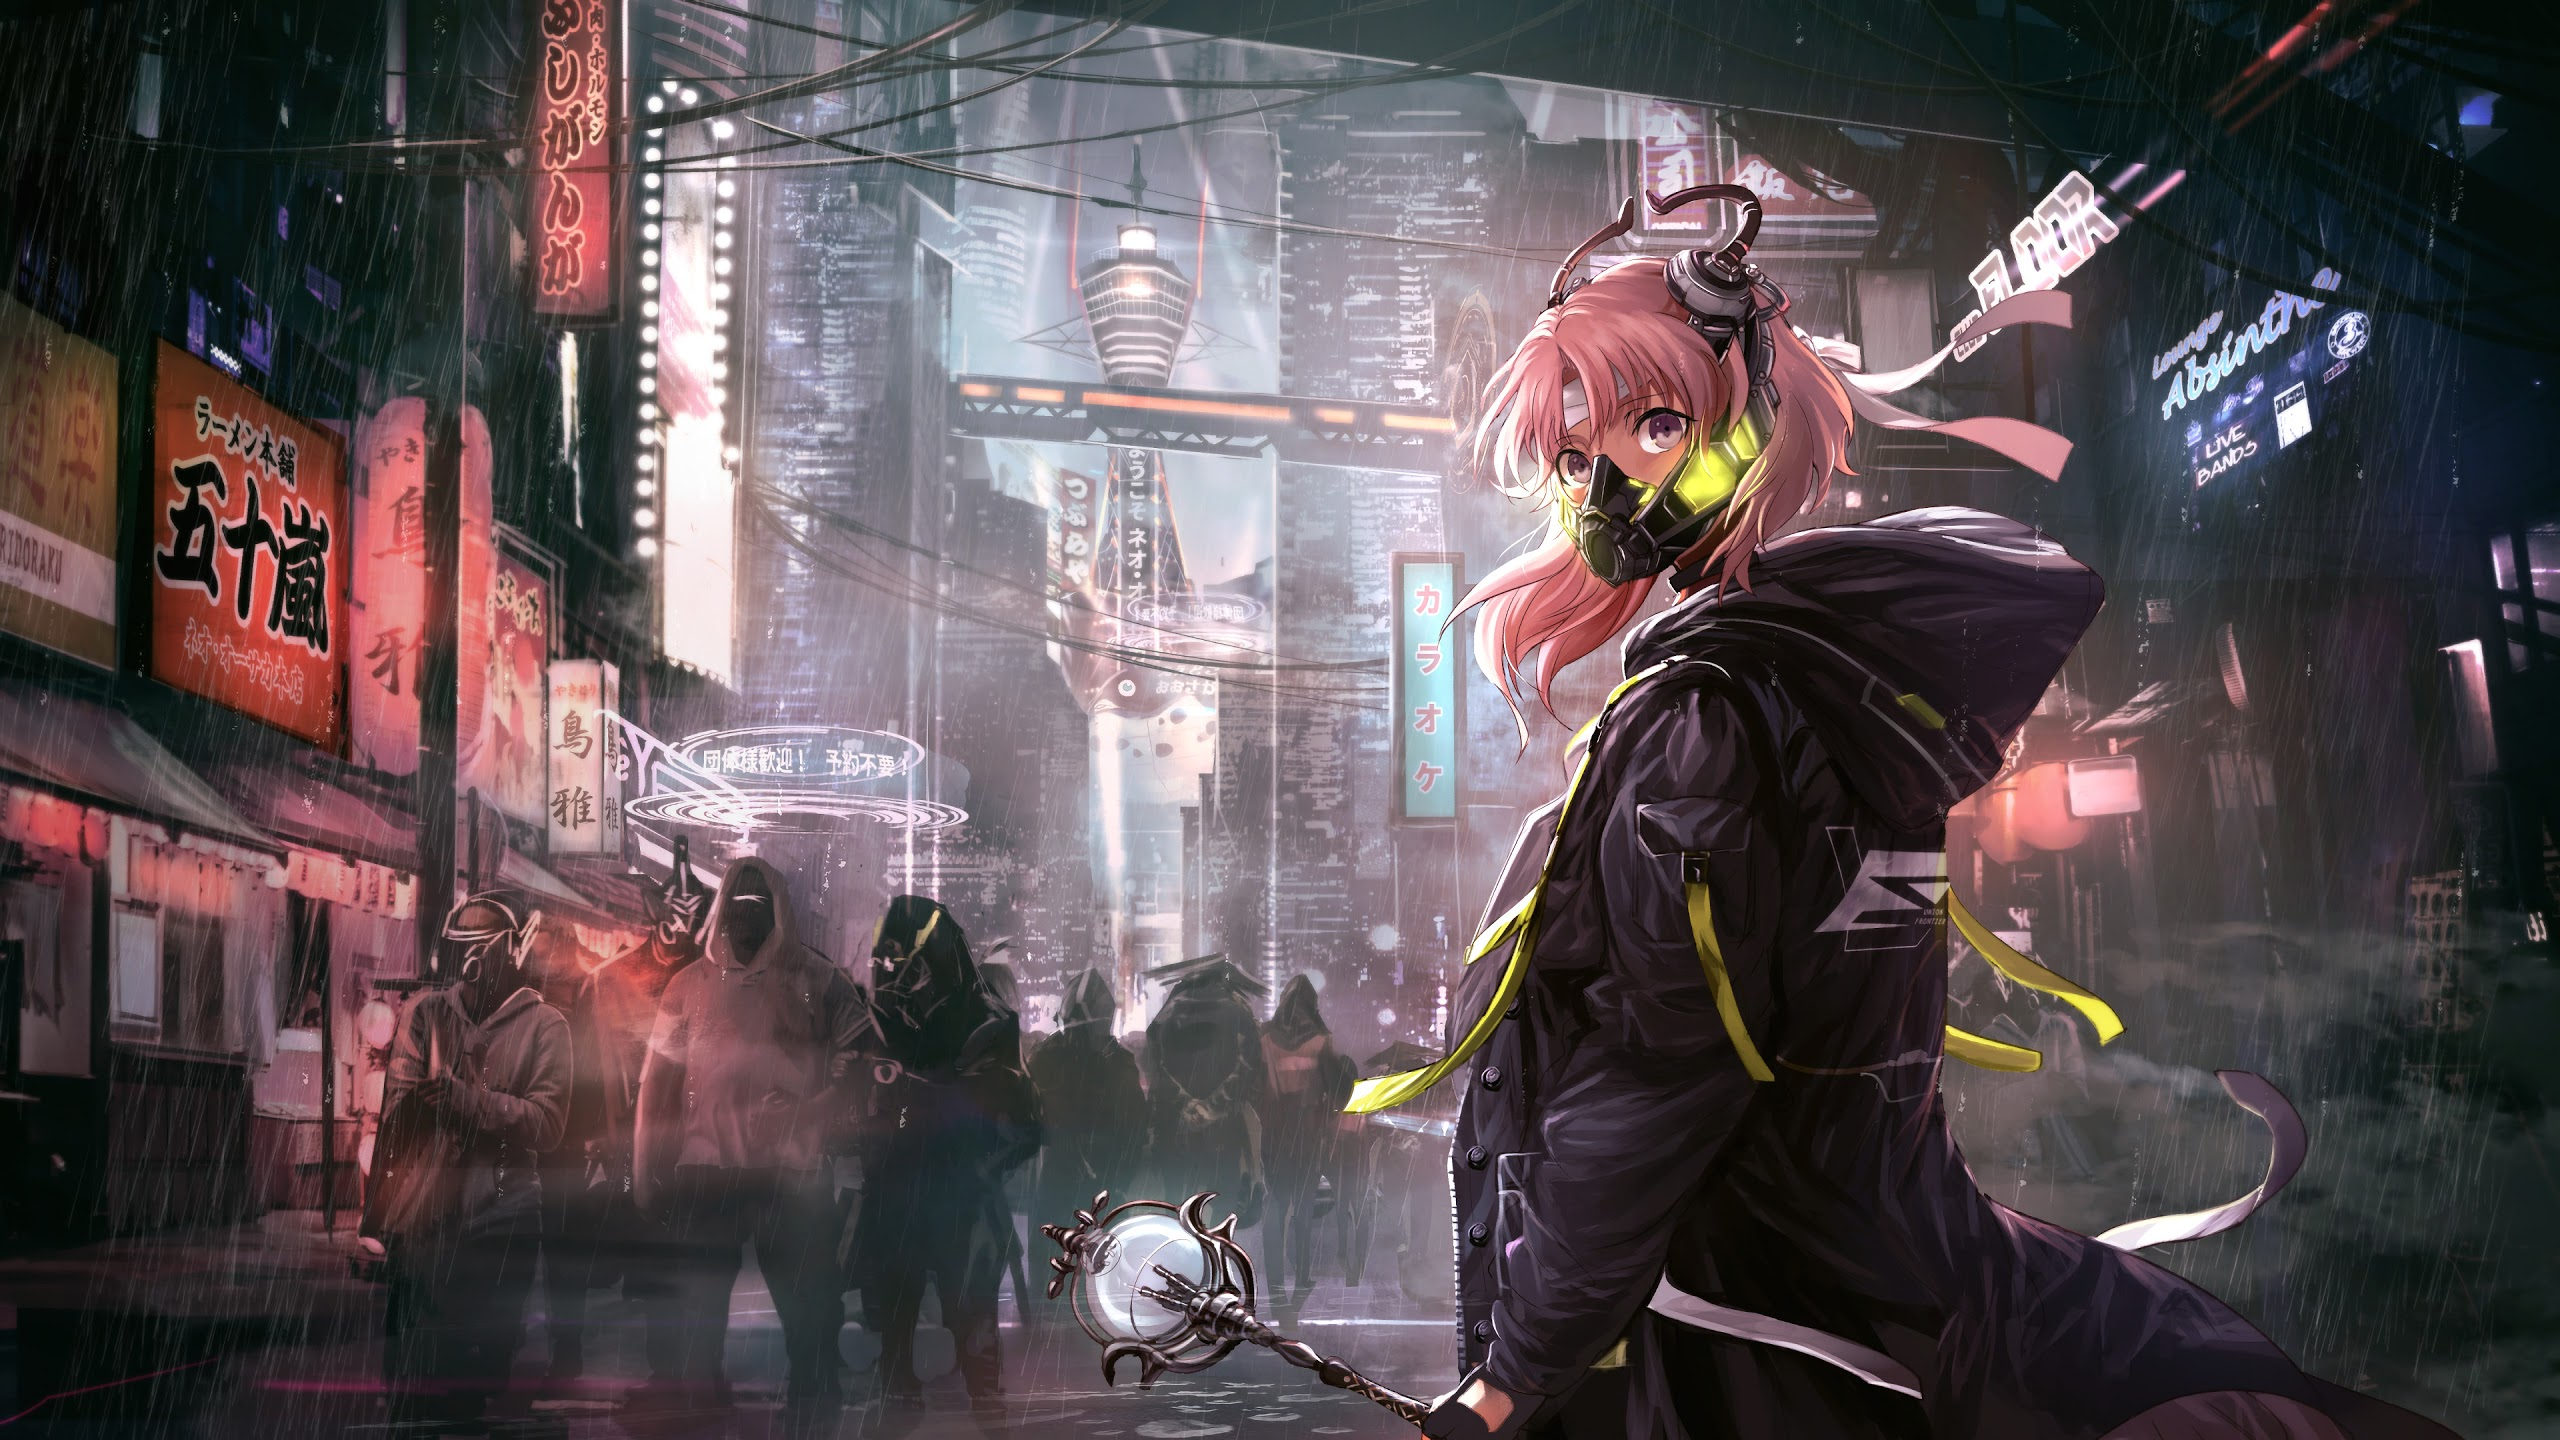 Cyberpunk Anime Wallpaper Posted By Ryan Walker